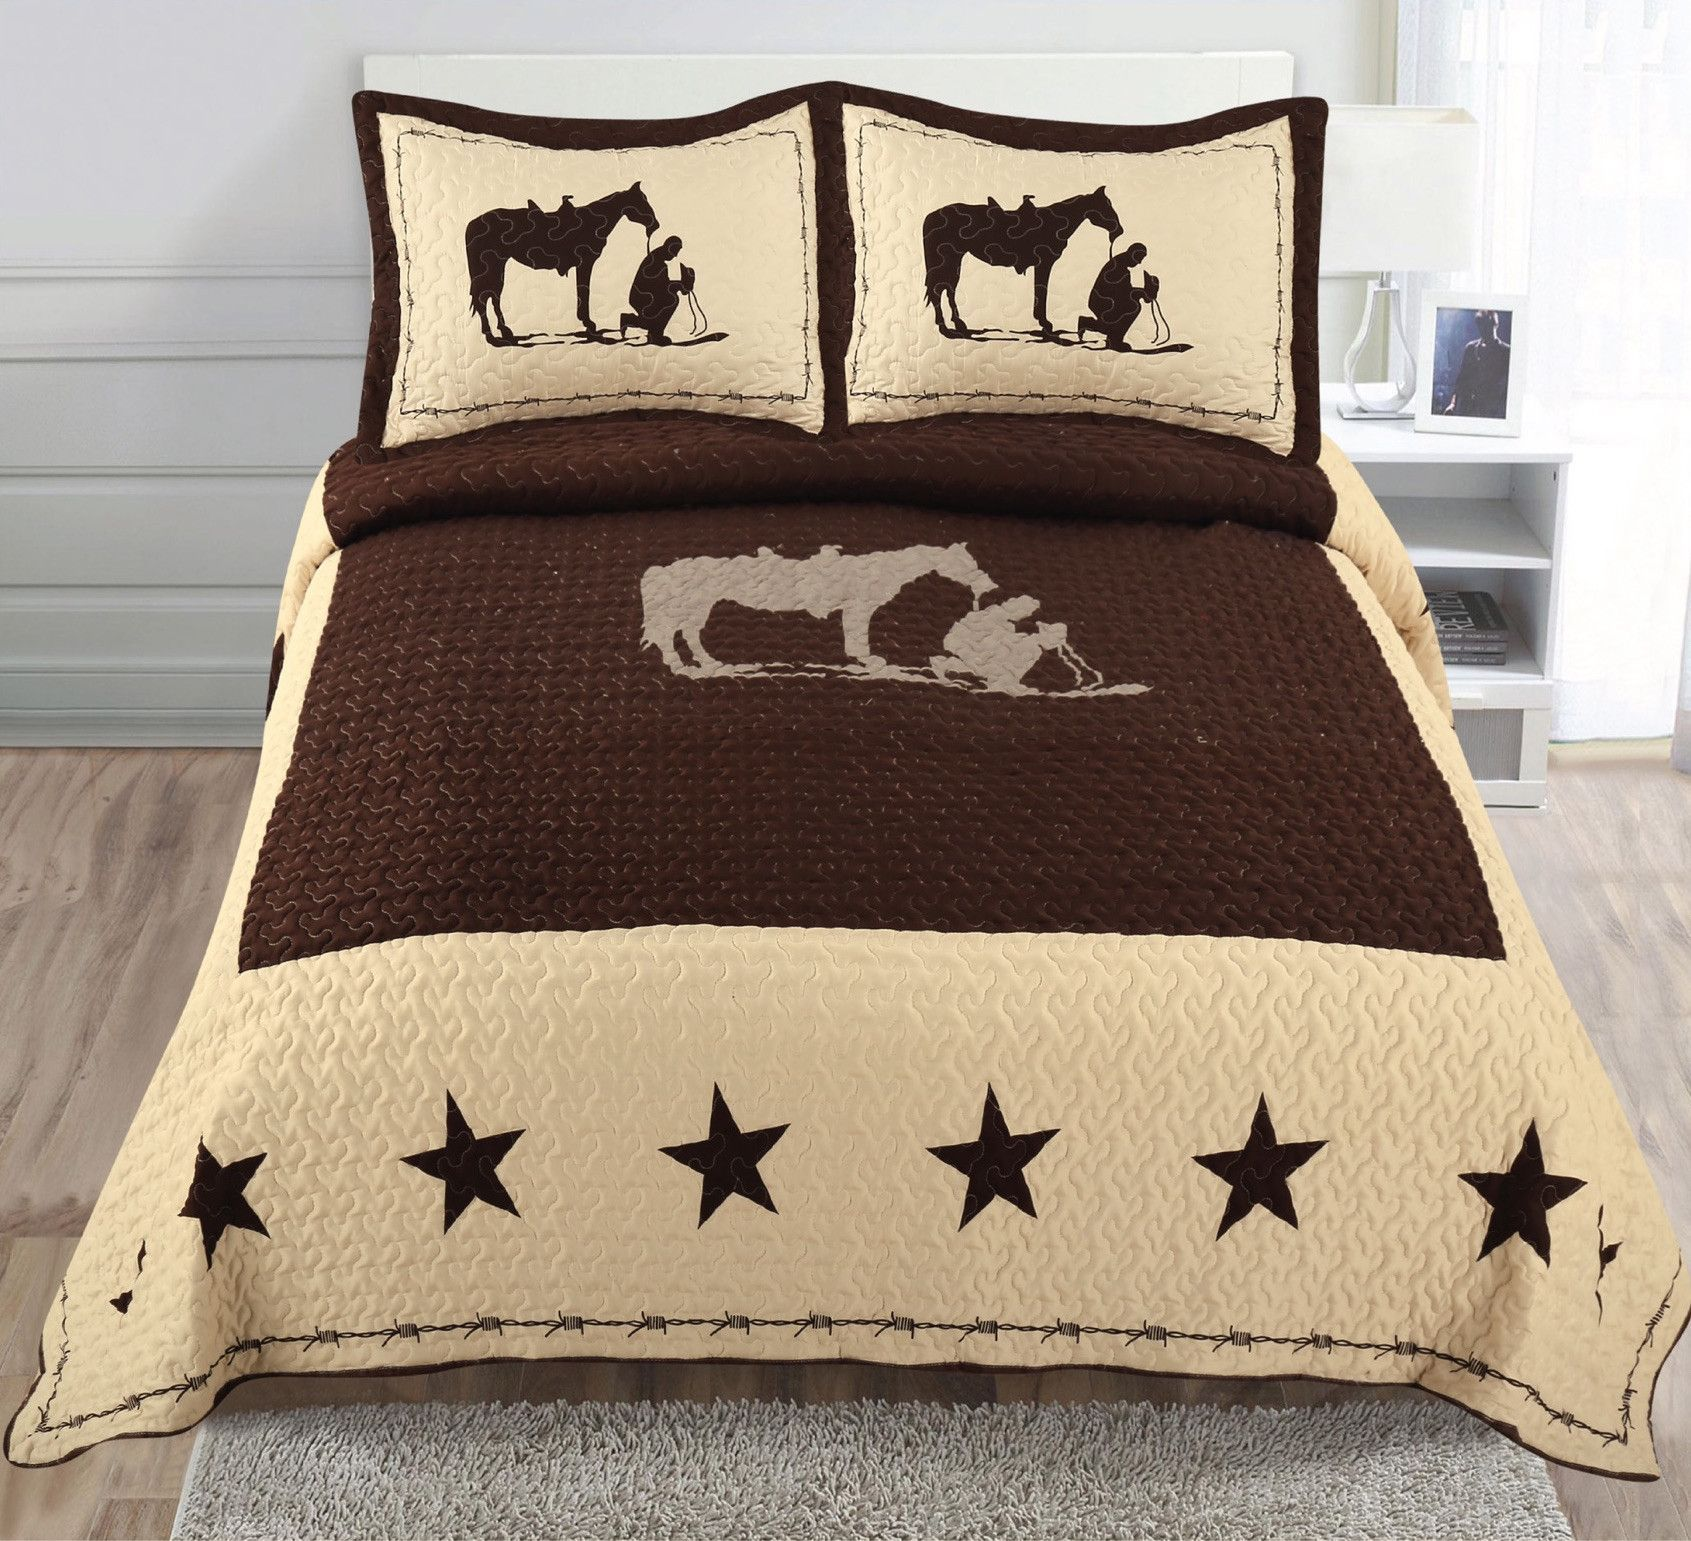 Praying Cowboy Horse Star Western Brown Quilt Bedspread Beige Bed Spreads Cowboy Bedroom Duvet Bedding Sets